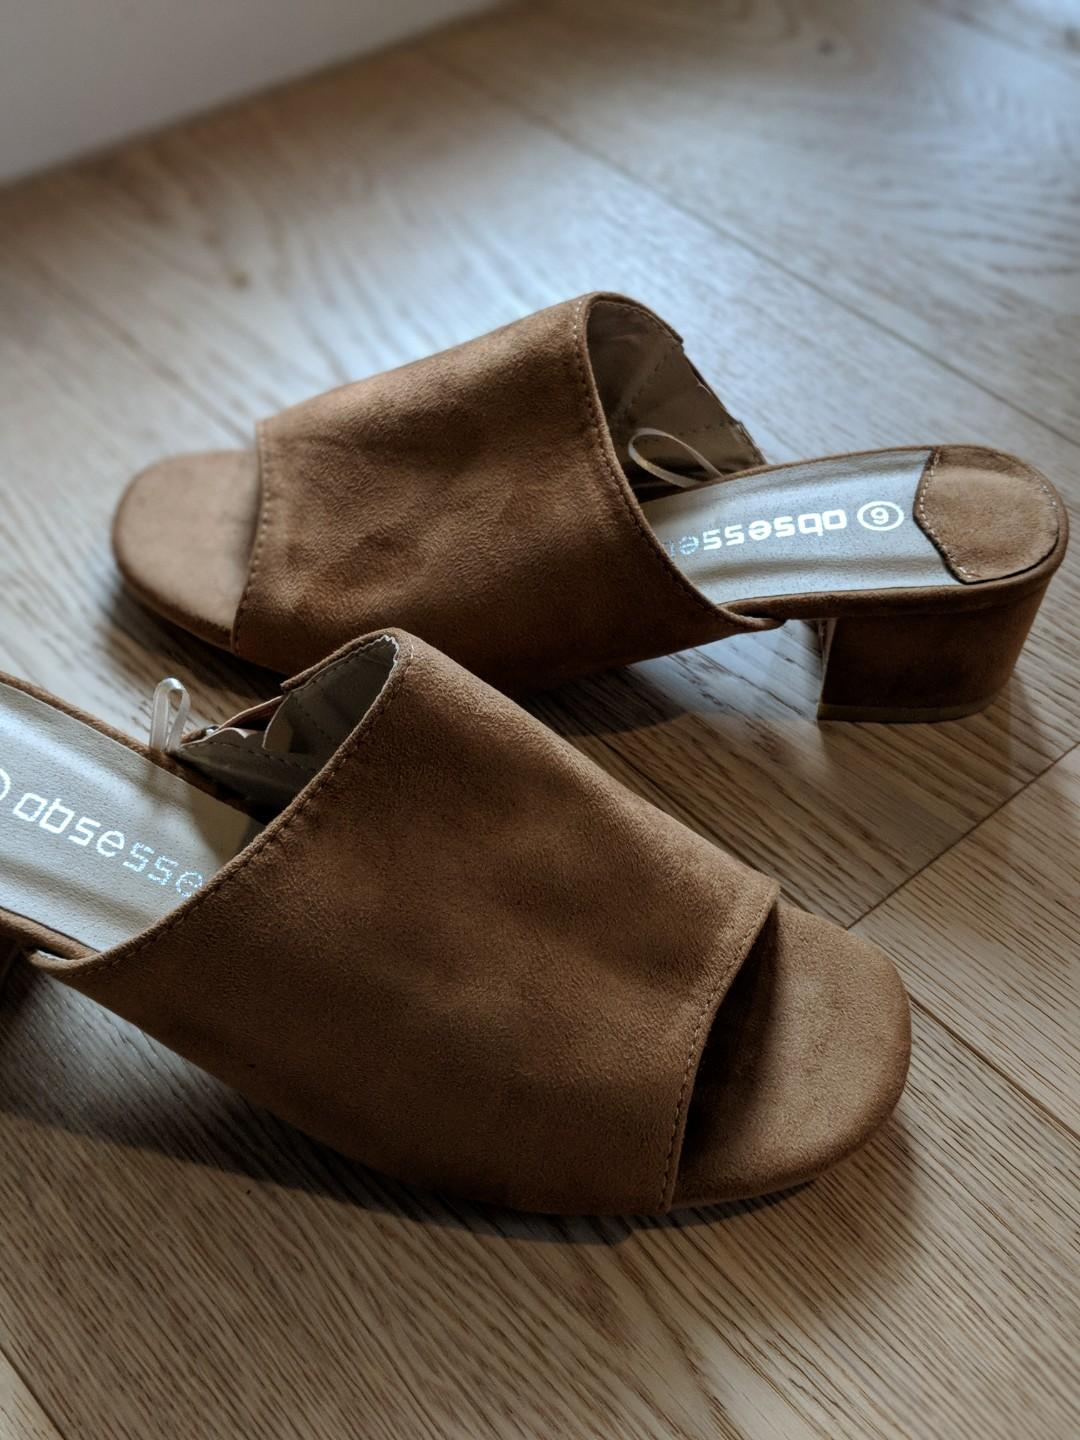 New - Spendless shoes faux suede slides size 6